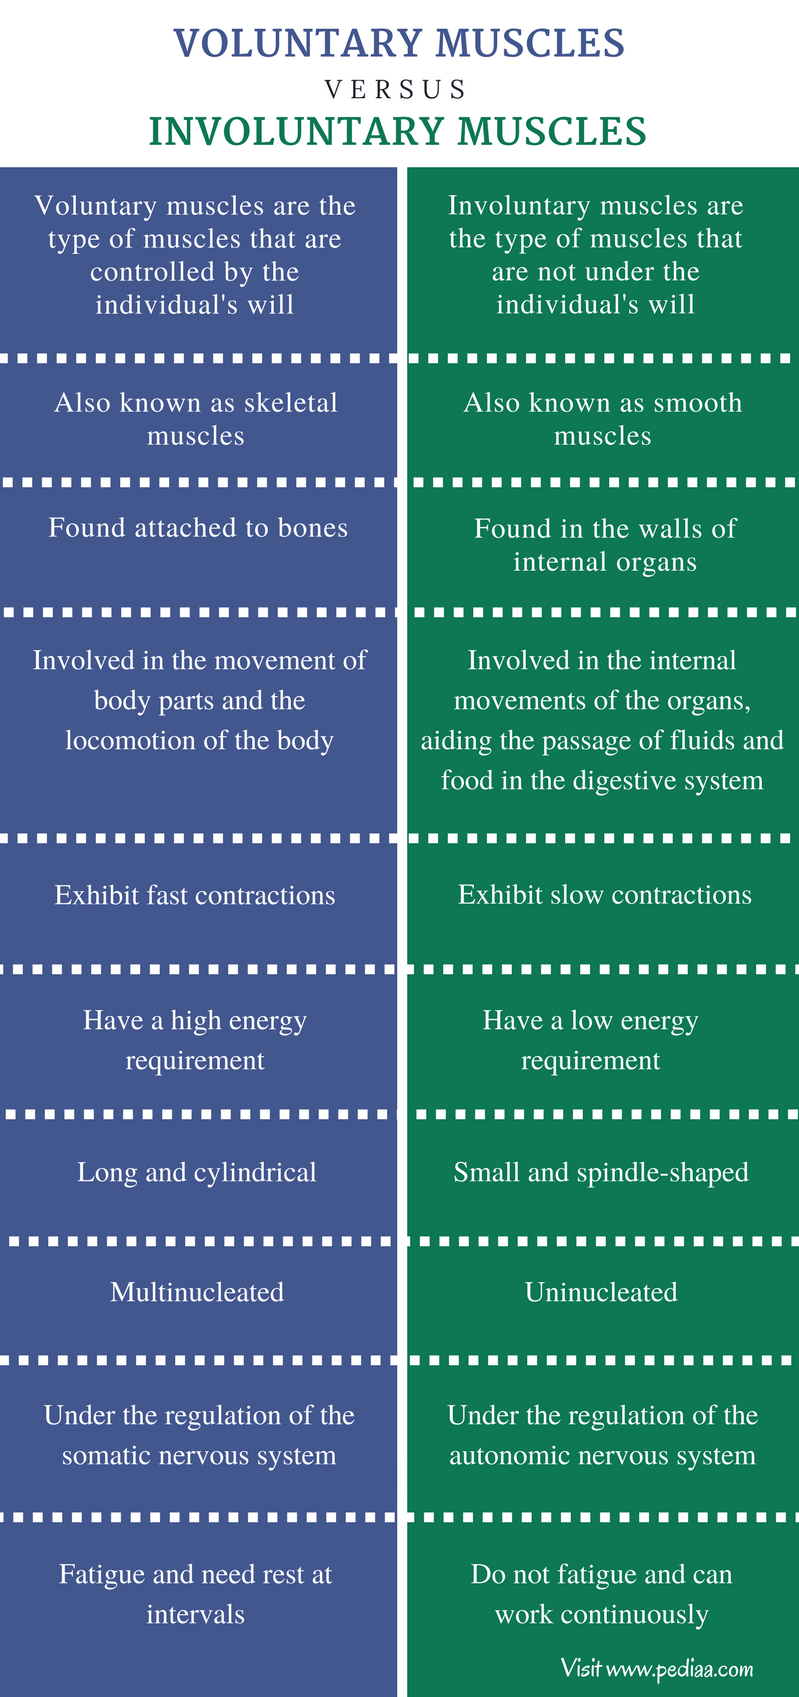 Difference Between Voluntary and Involuntary Muscles - Comparison Summary